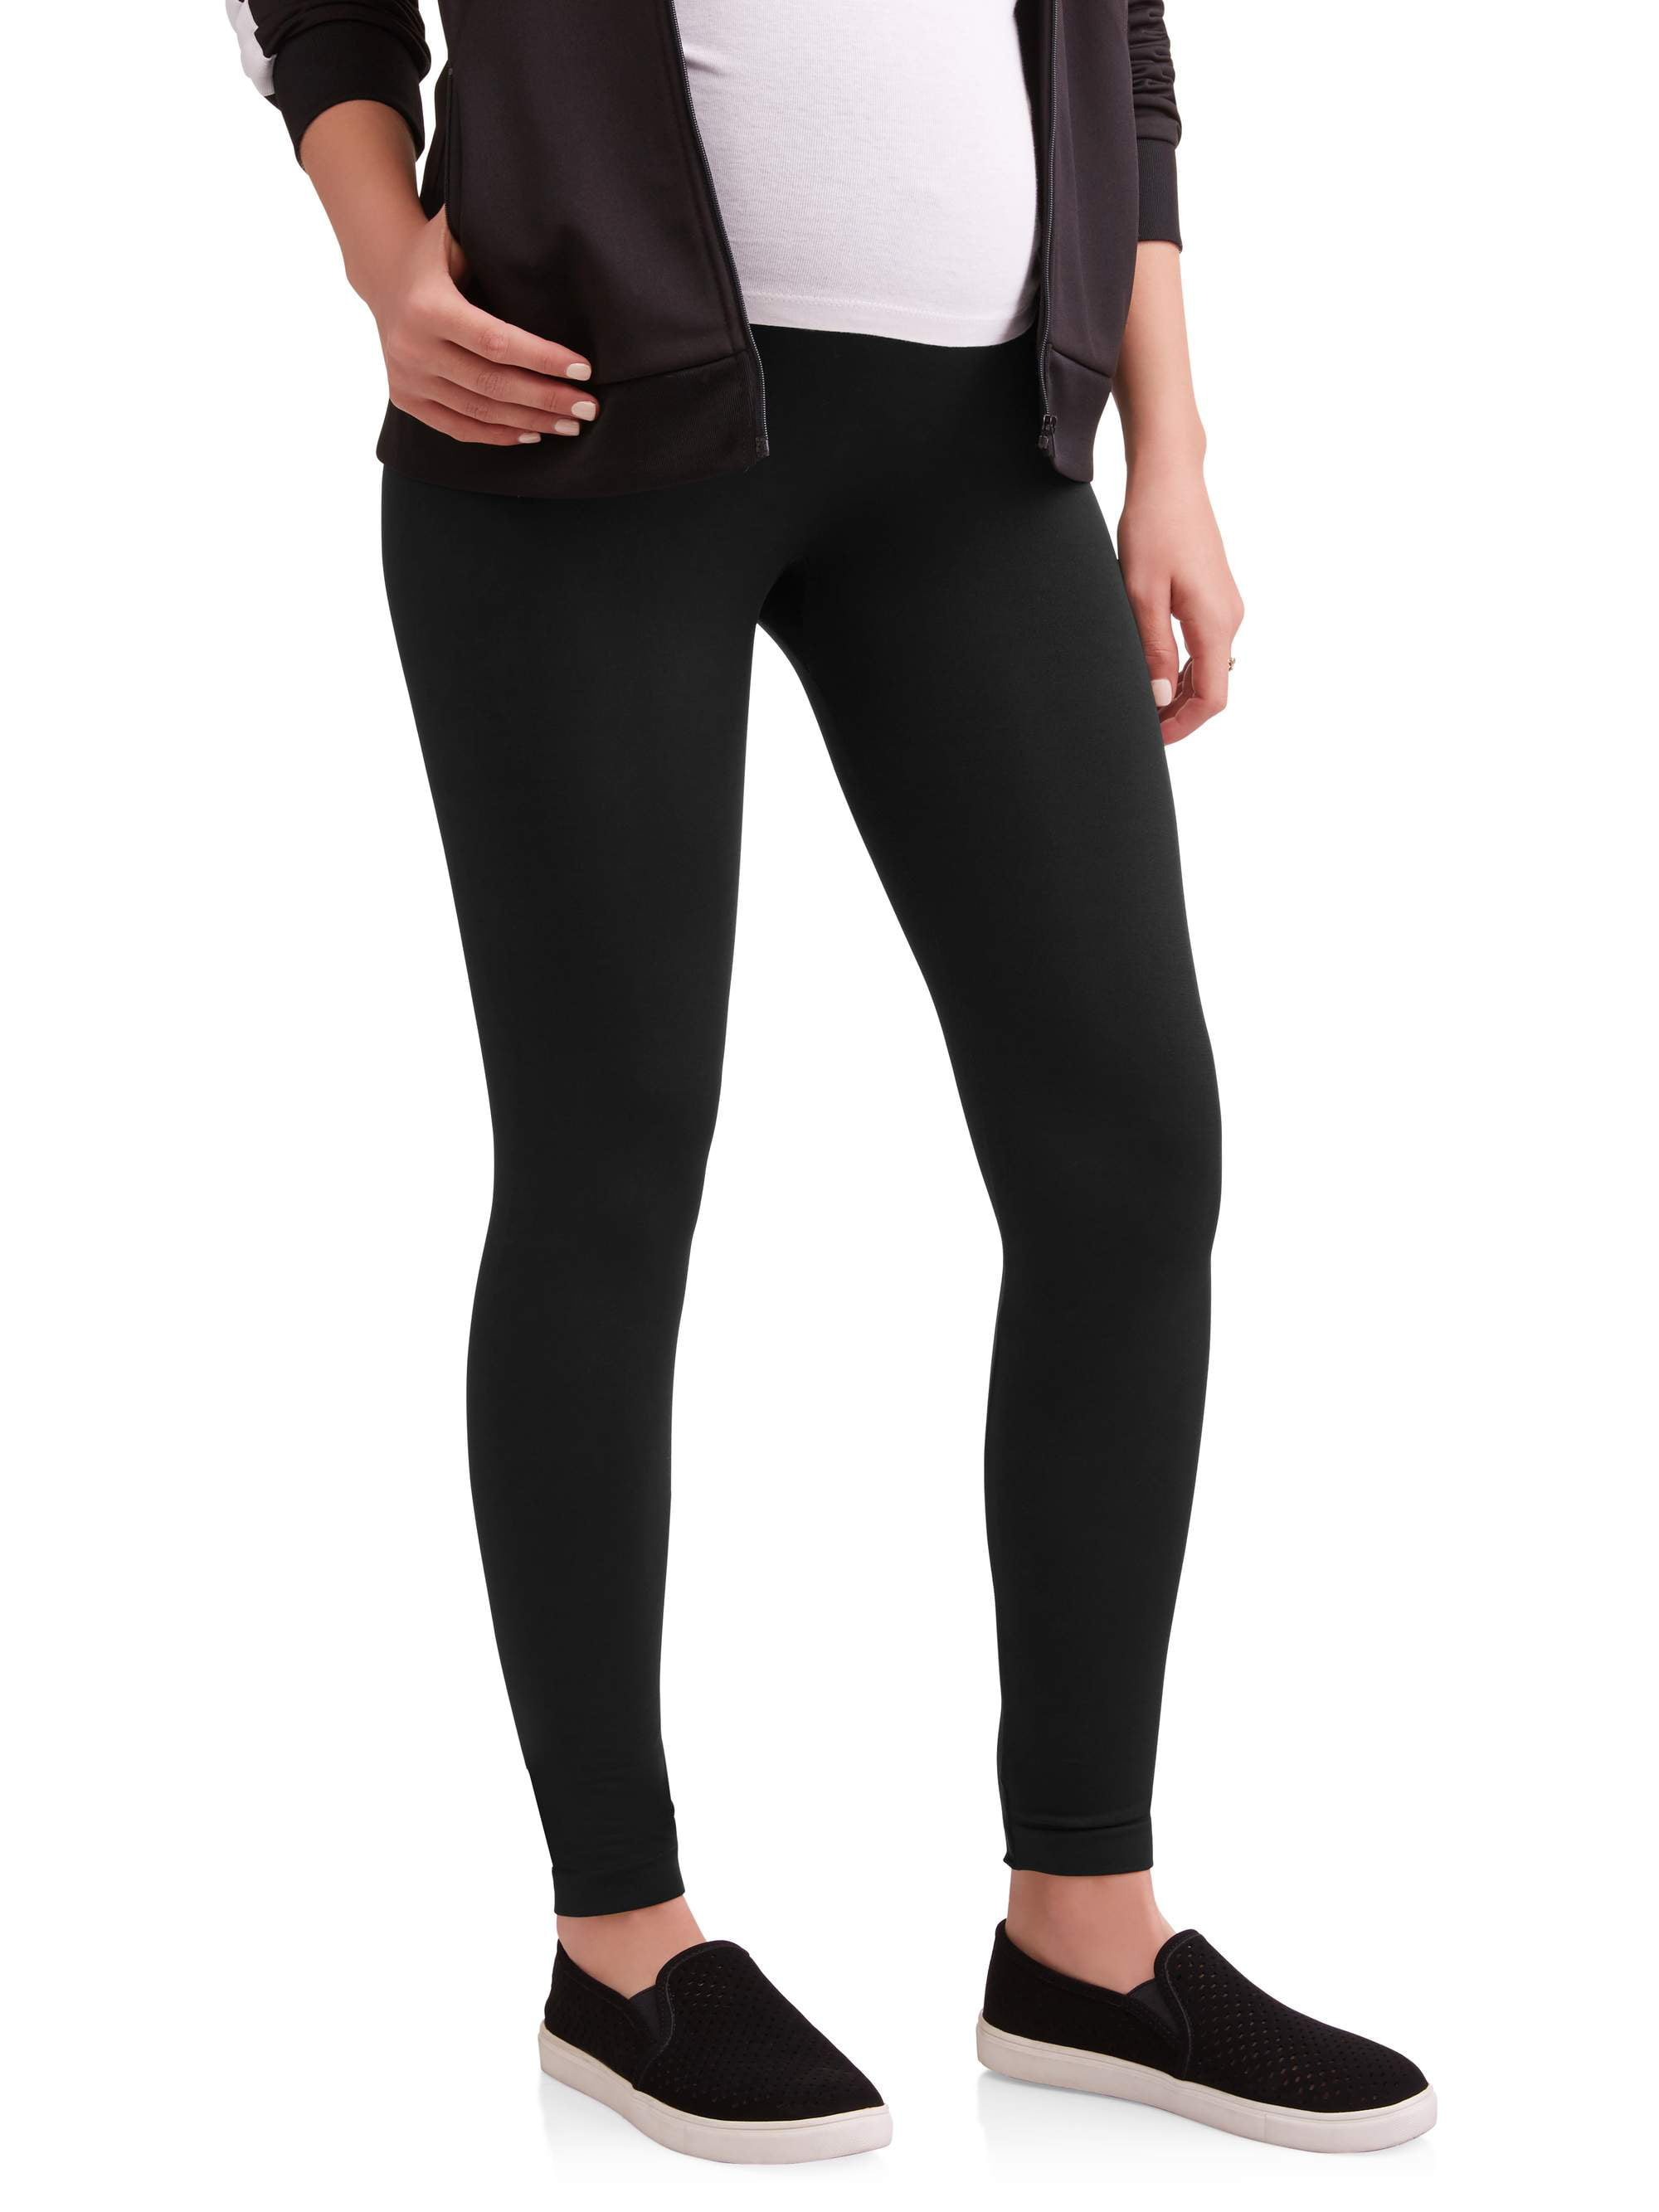 Maternity Over Belly Seamless Super Soft & Stretchy Leggings-- Available in Plus Size by Labor of Love